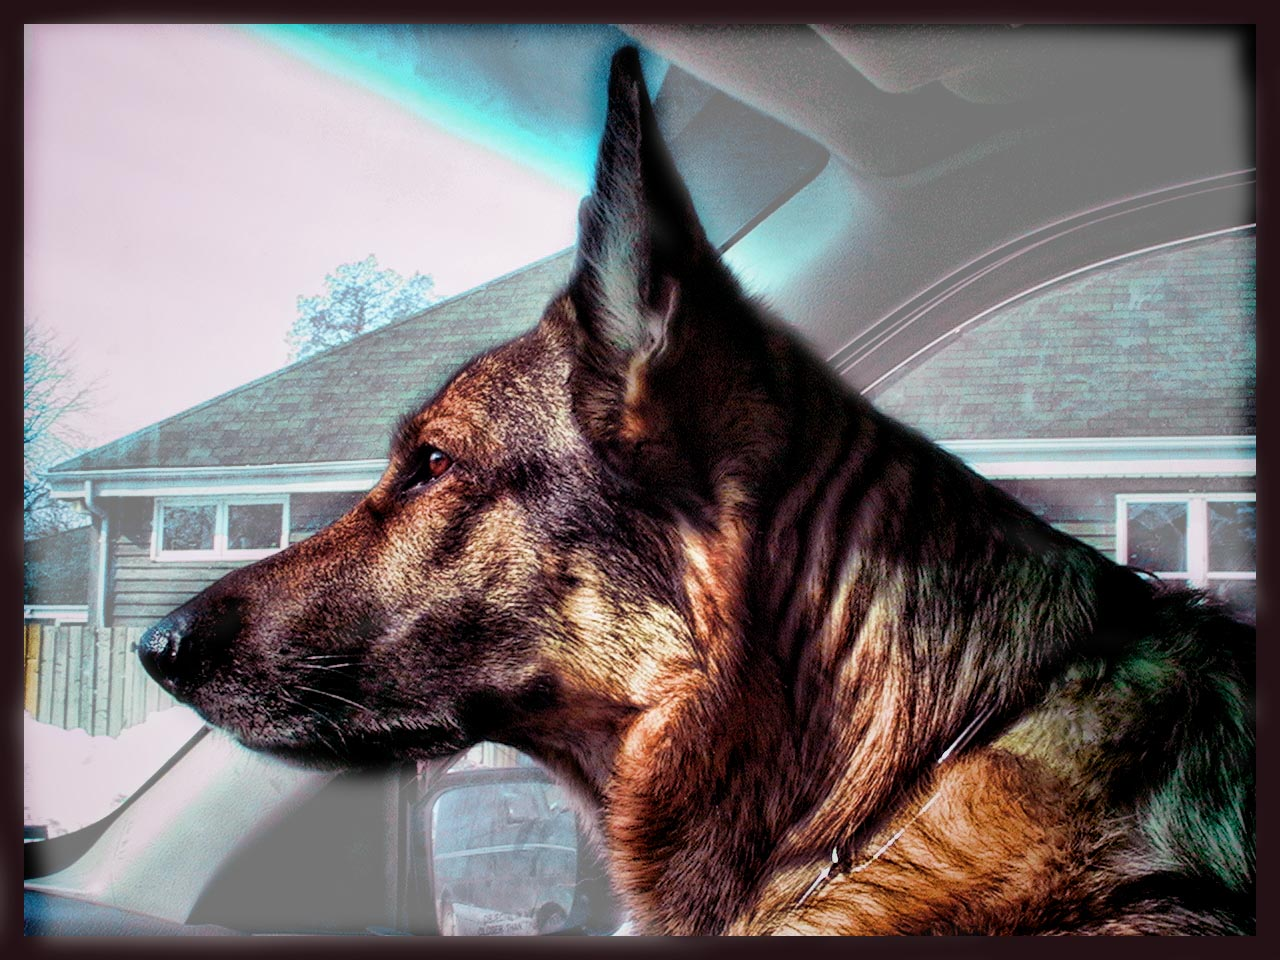 Dedicated to working dogs everywhere and the incredible partnership we have with them.  - Dwyn Tomlinson